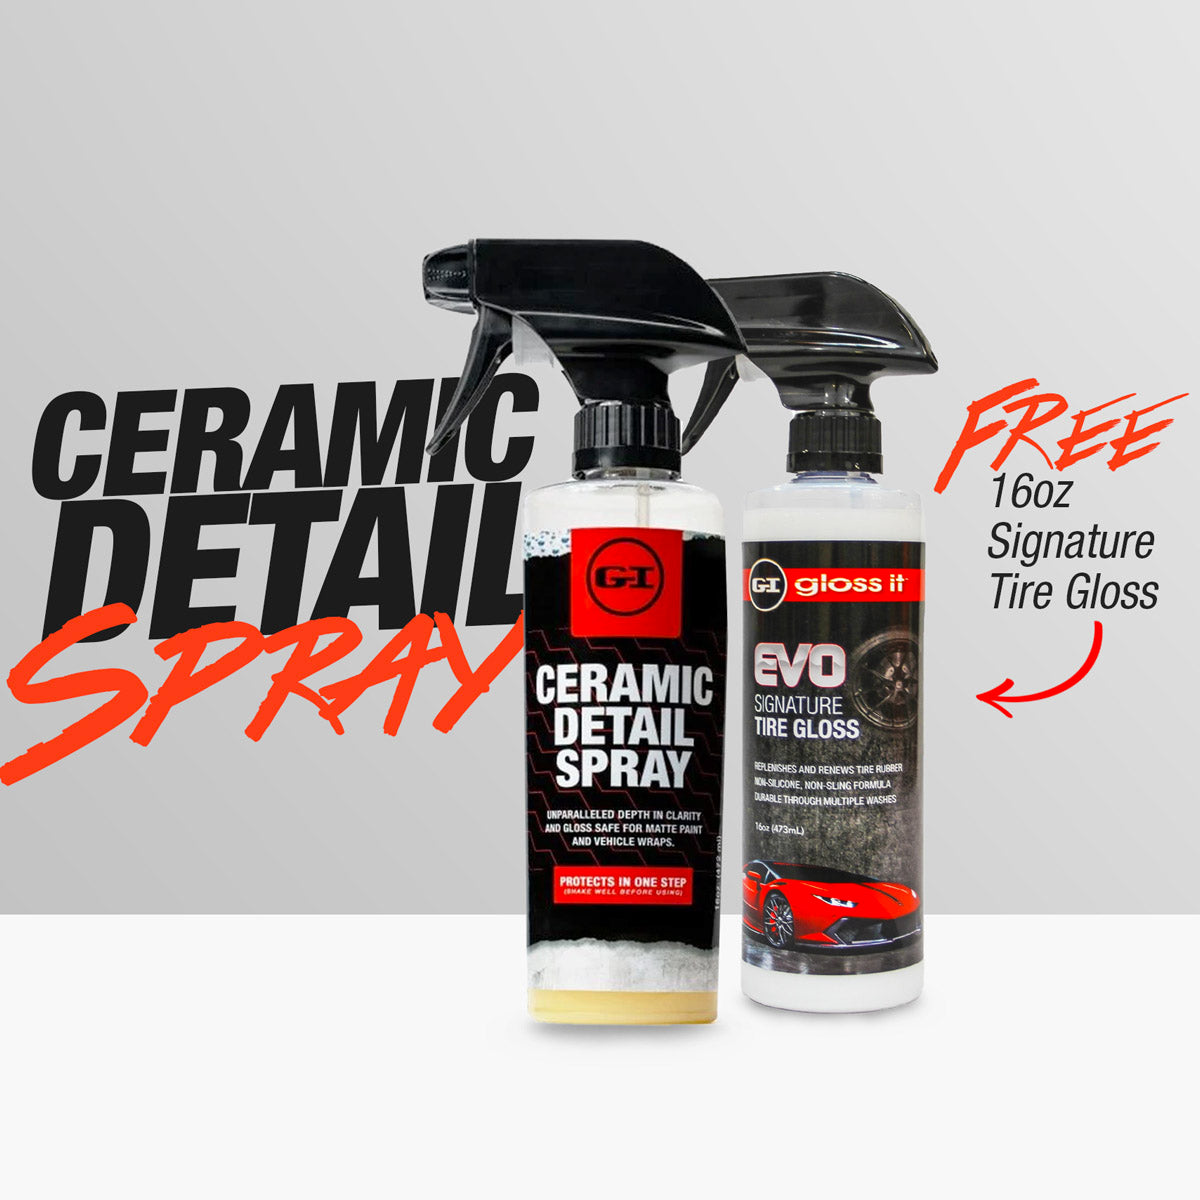 Ceramic Detail Spray + FREE 1 Tire Gloss